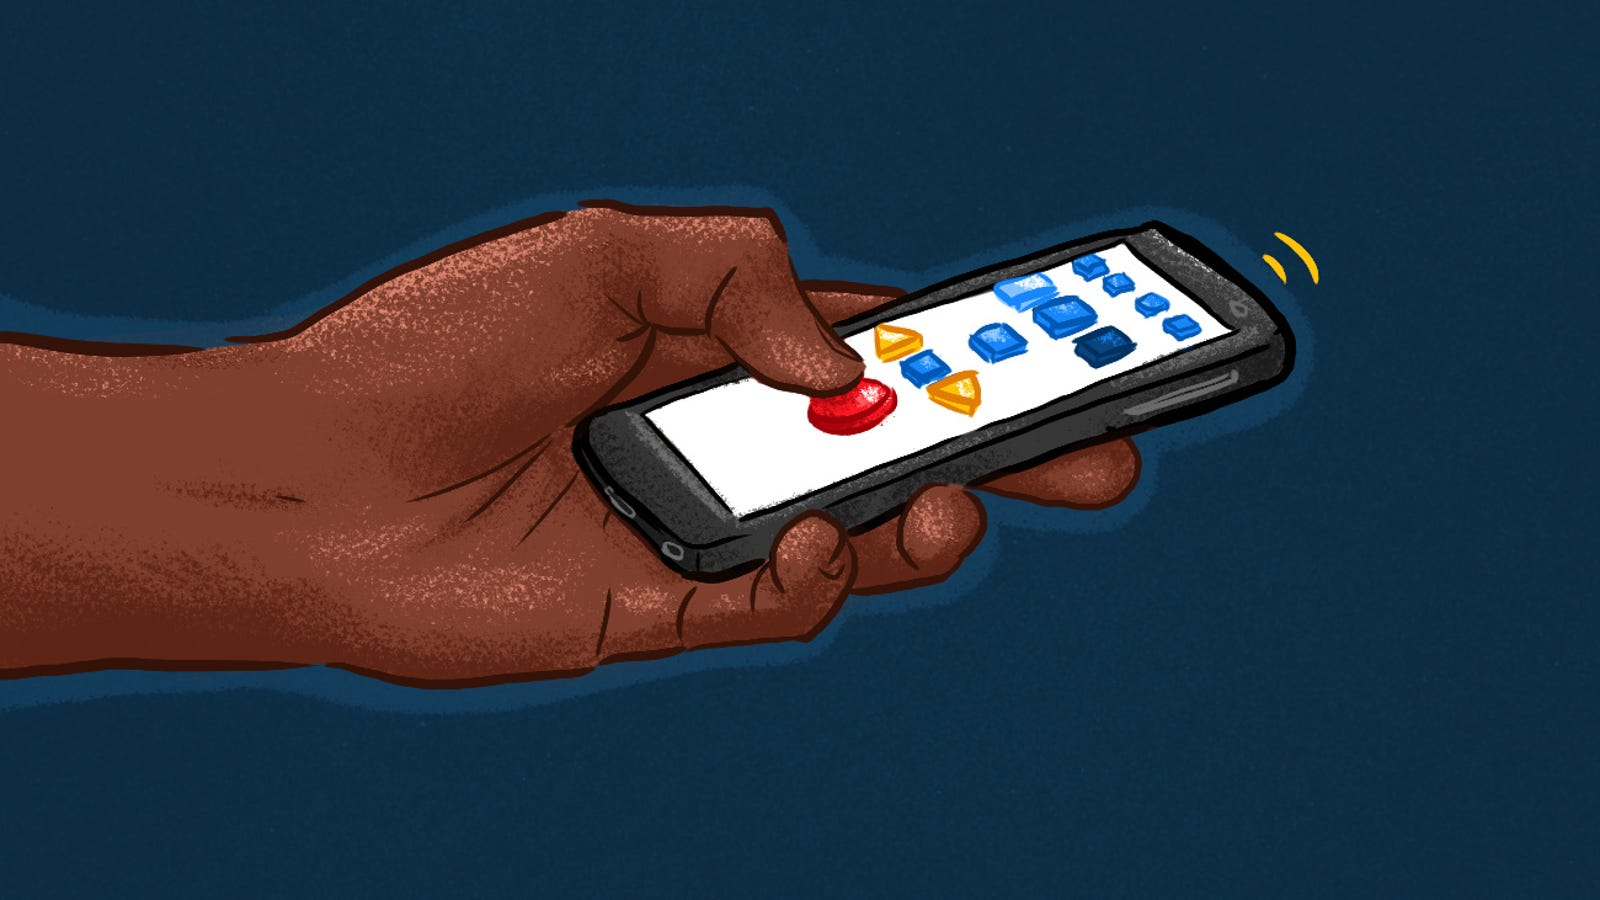 Seven Apps That Can Secretly Act as Remote Controls